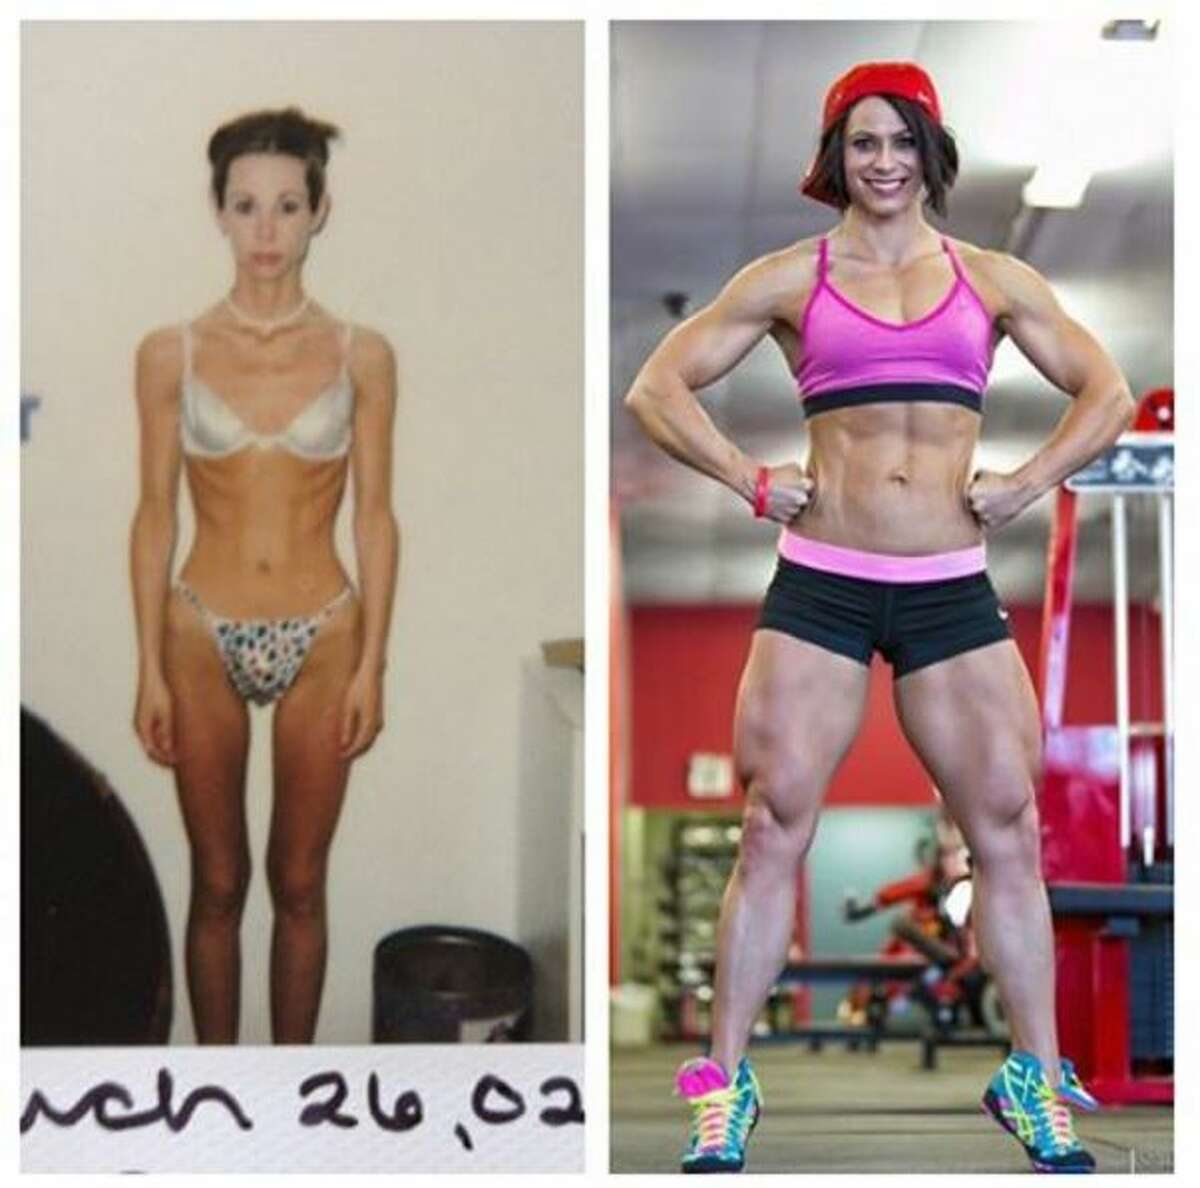 Faced with the potentially fatal effects of anorexia and bulimia, a West Texas woman transformed her life in the gym to become a body builder with an impressive physique and journey to match.